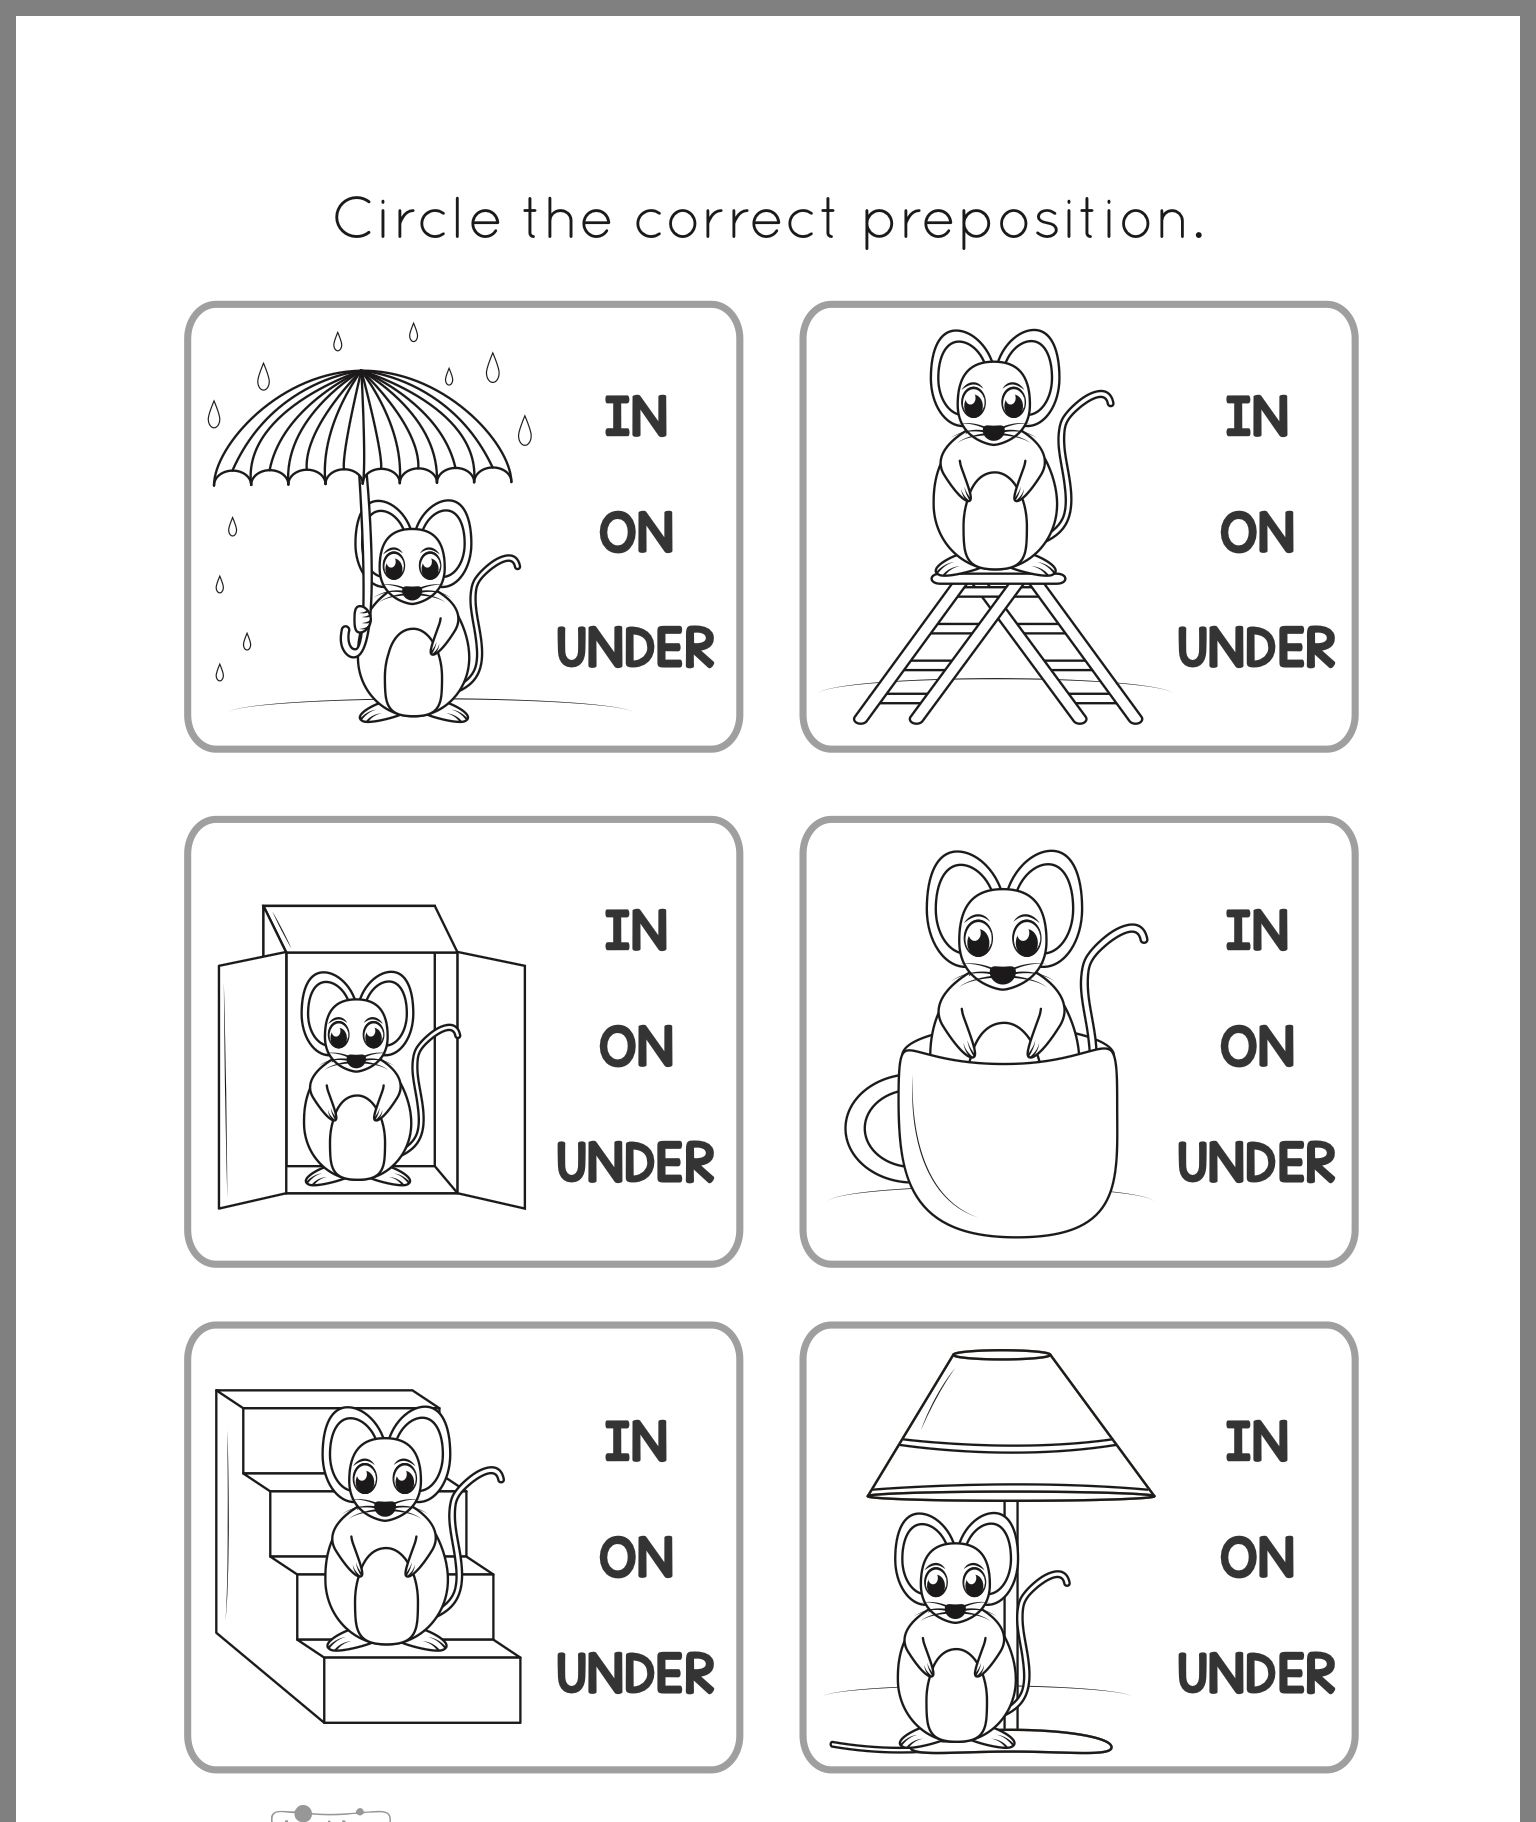 Prepositions Of Place Preposiciones De Lugar In 2020 English Activities For Kids English Worksheets For Kids English Worksheets For Kindergarten